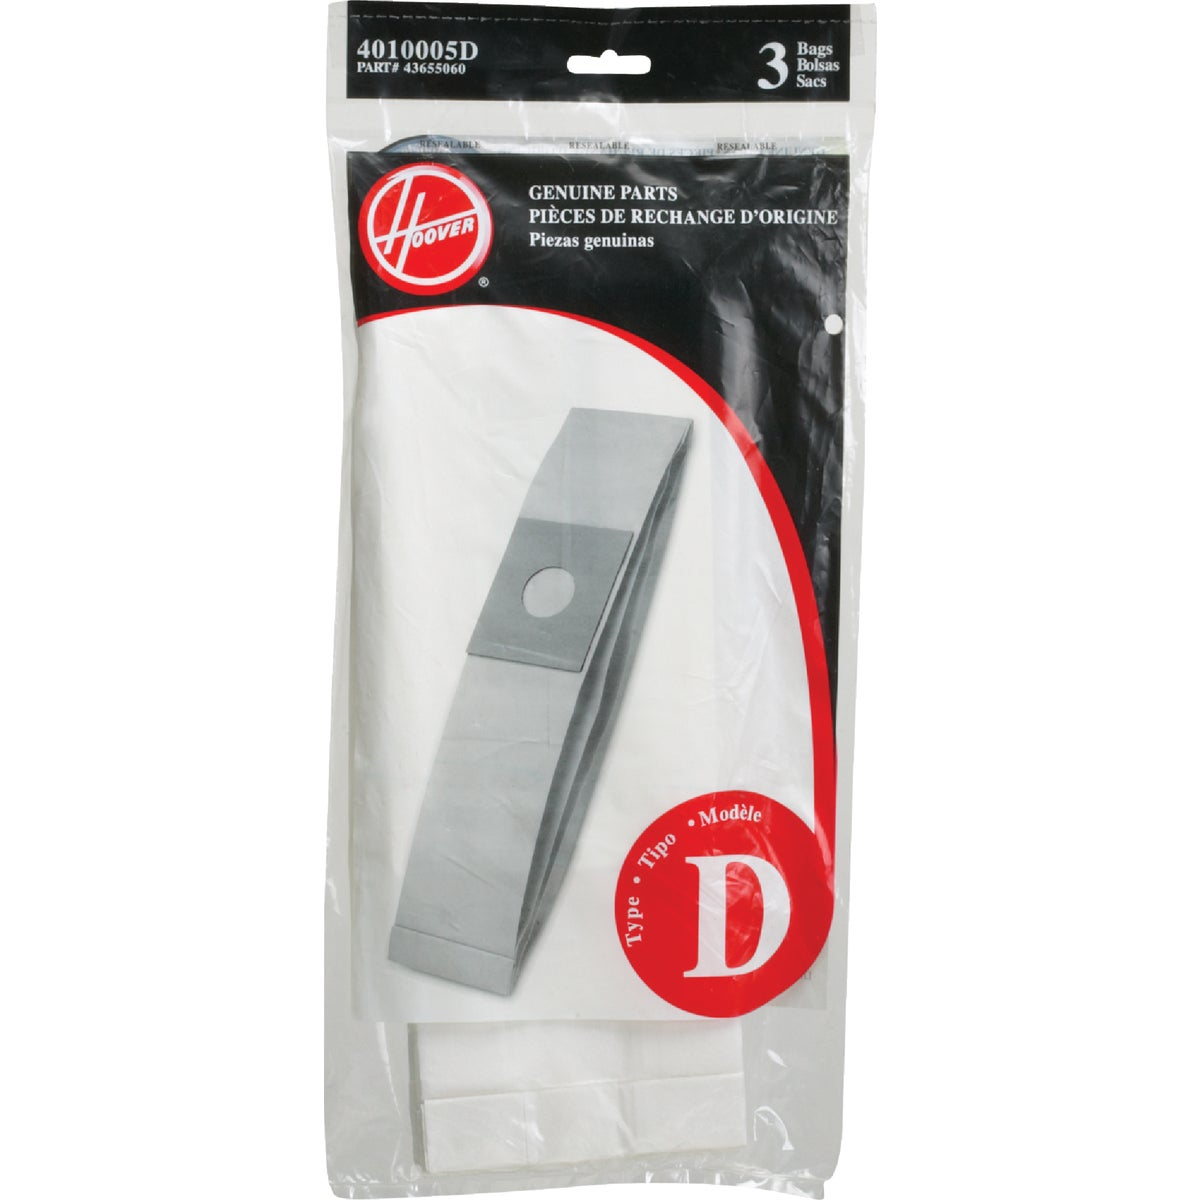 TYPE D VAC CLEANER BAG